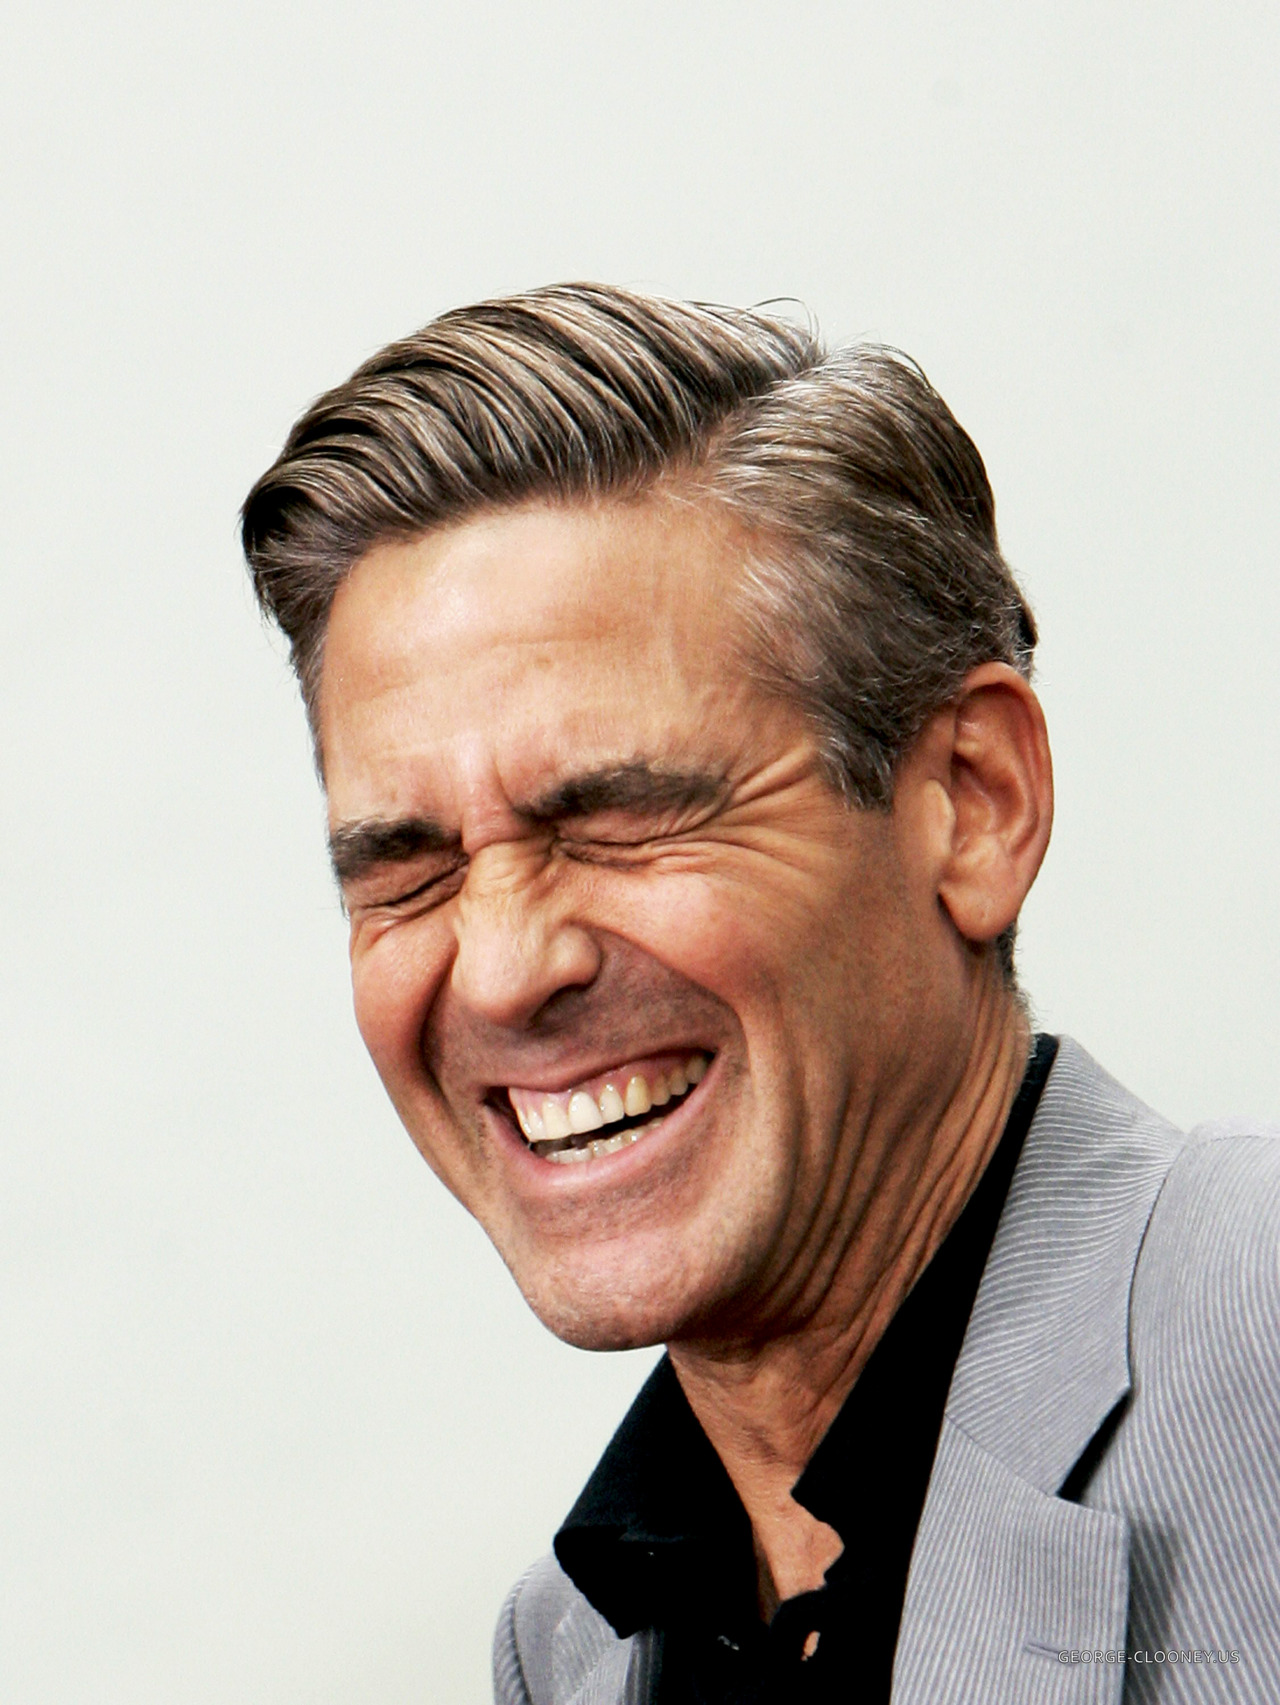 Clooney has a laugh / Source: Lean / Luxe